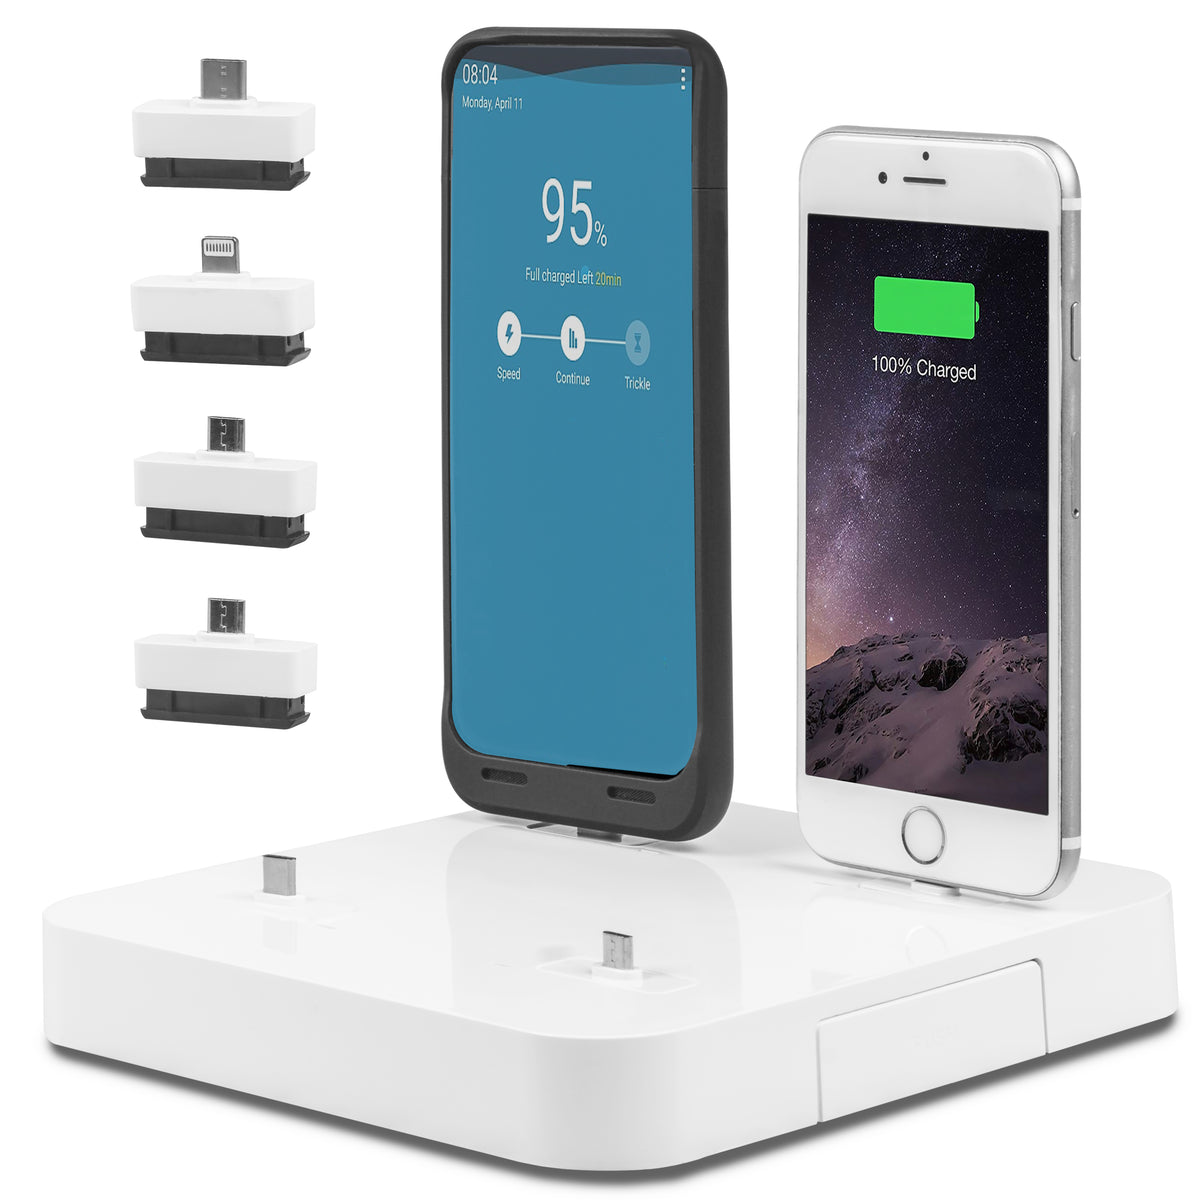 Kiwi K4 - Phone Docking USB Charging Station: Desktop Organizer Charger Stand - Charges Multiple Devices Including Apple iPhone & iPad or Android Phones & Tablets - 6 Dock Station with Multi Port USB Power Hub